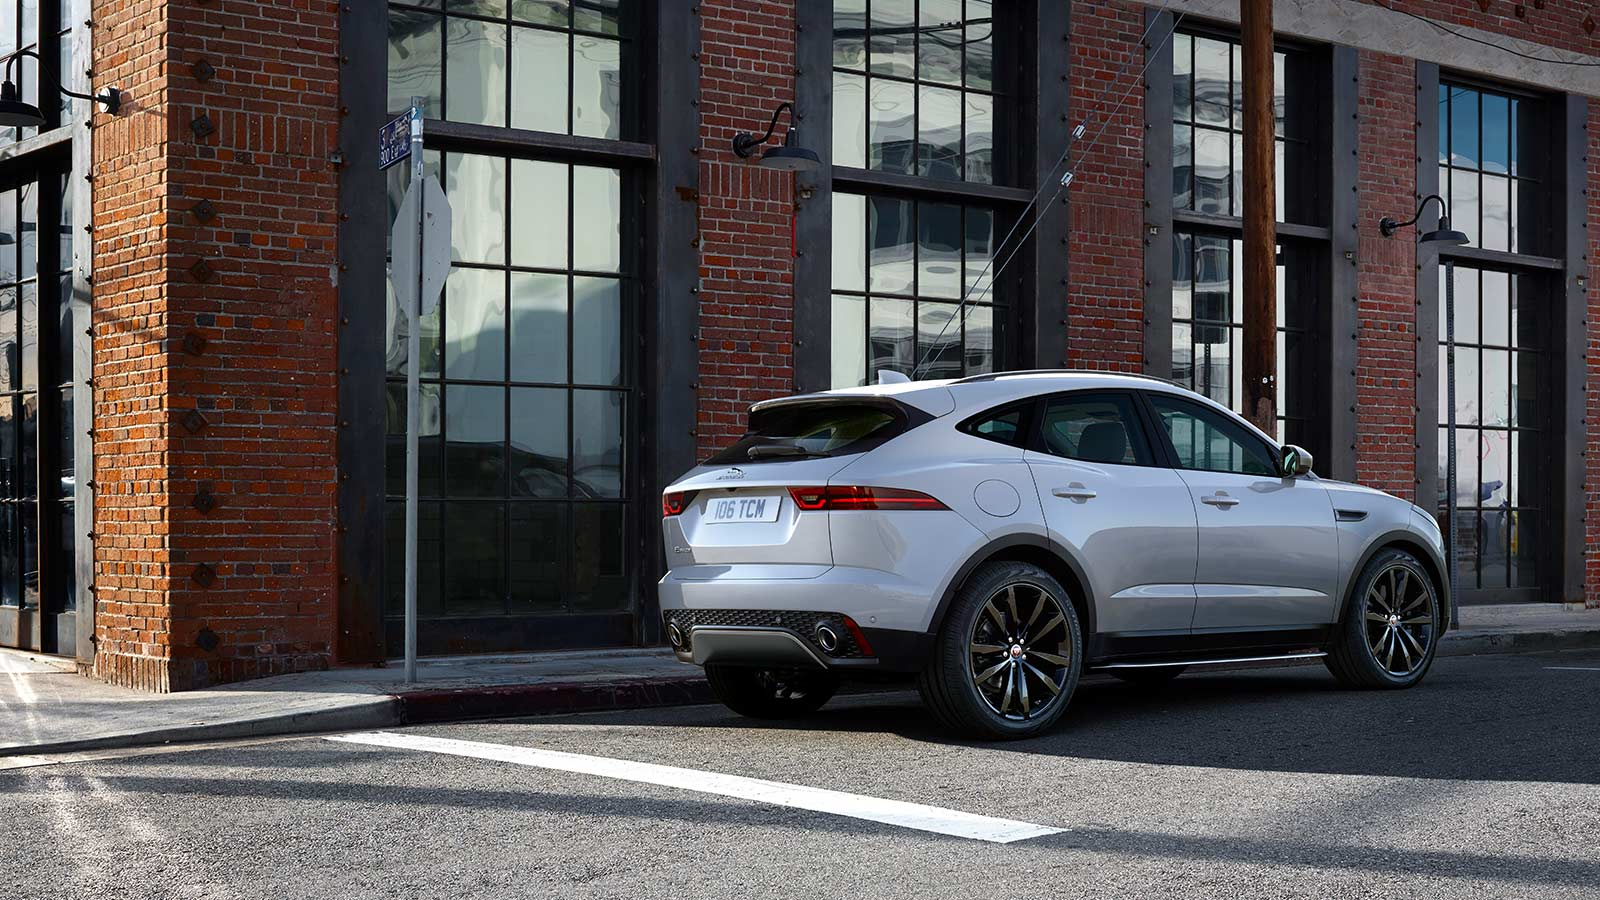 E-PACE S IN BORASCO GREY WITH OPTIONAL FEATURES FITTED PARKED IN CITY STREET.